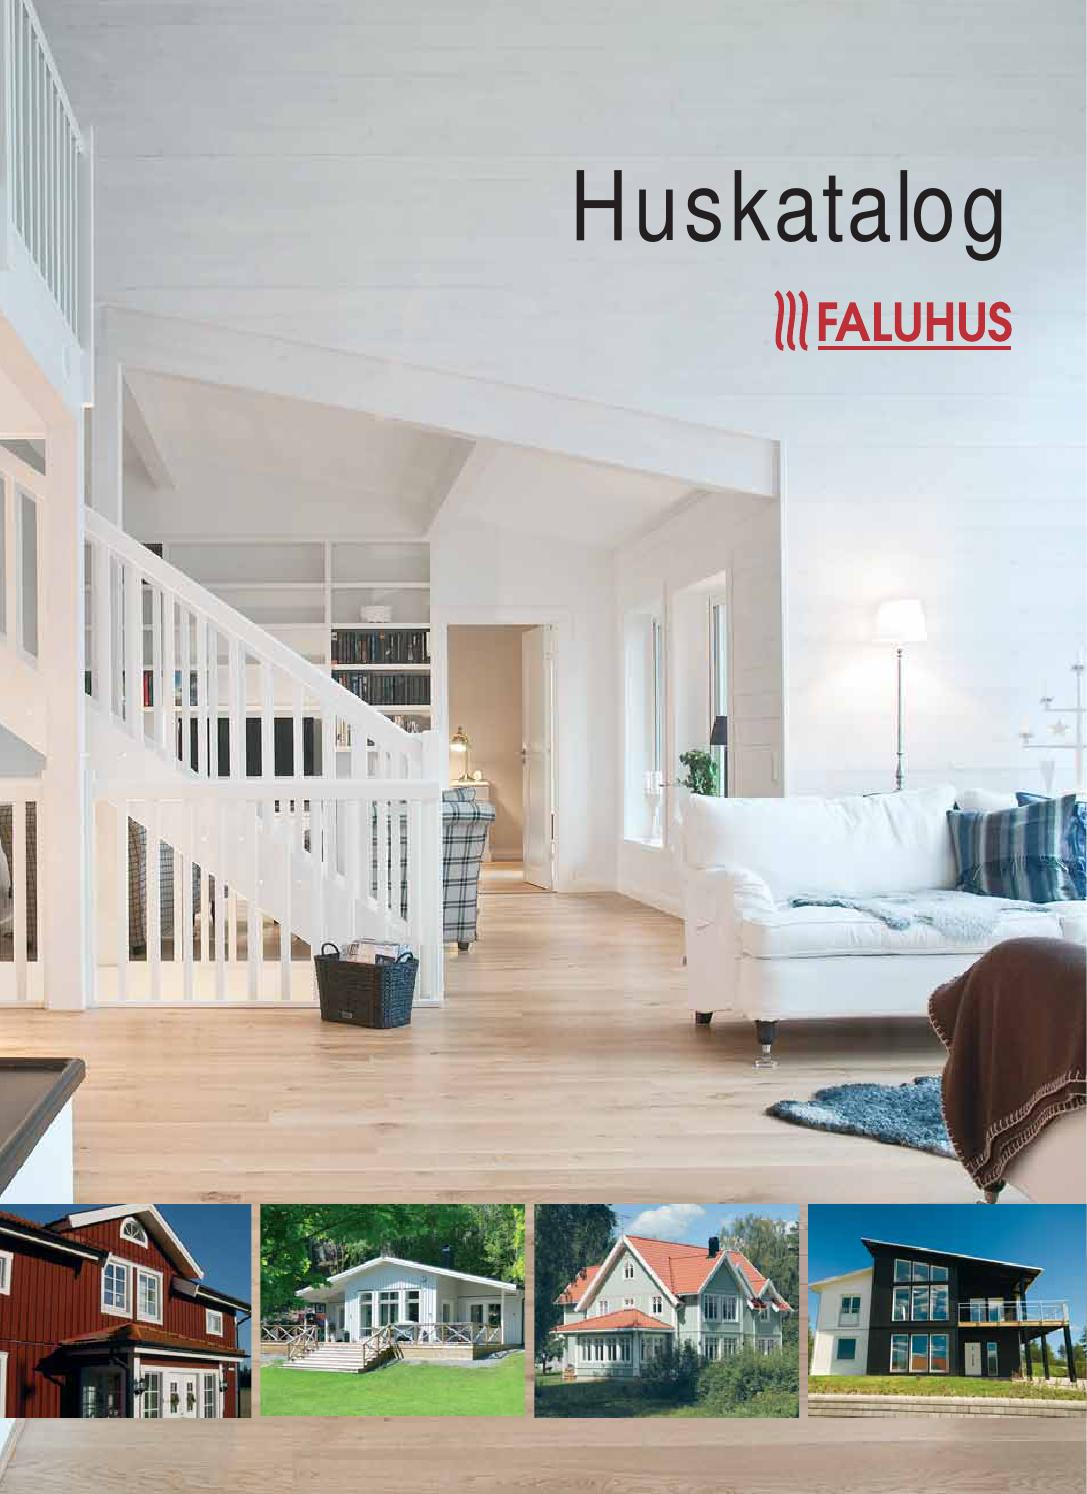 Faluhus huskatalog 2014 by Christer Udd - issuu